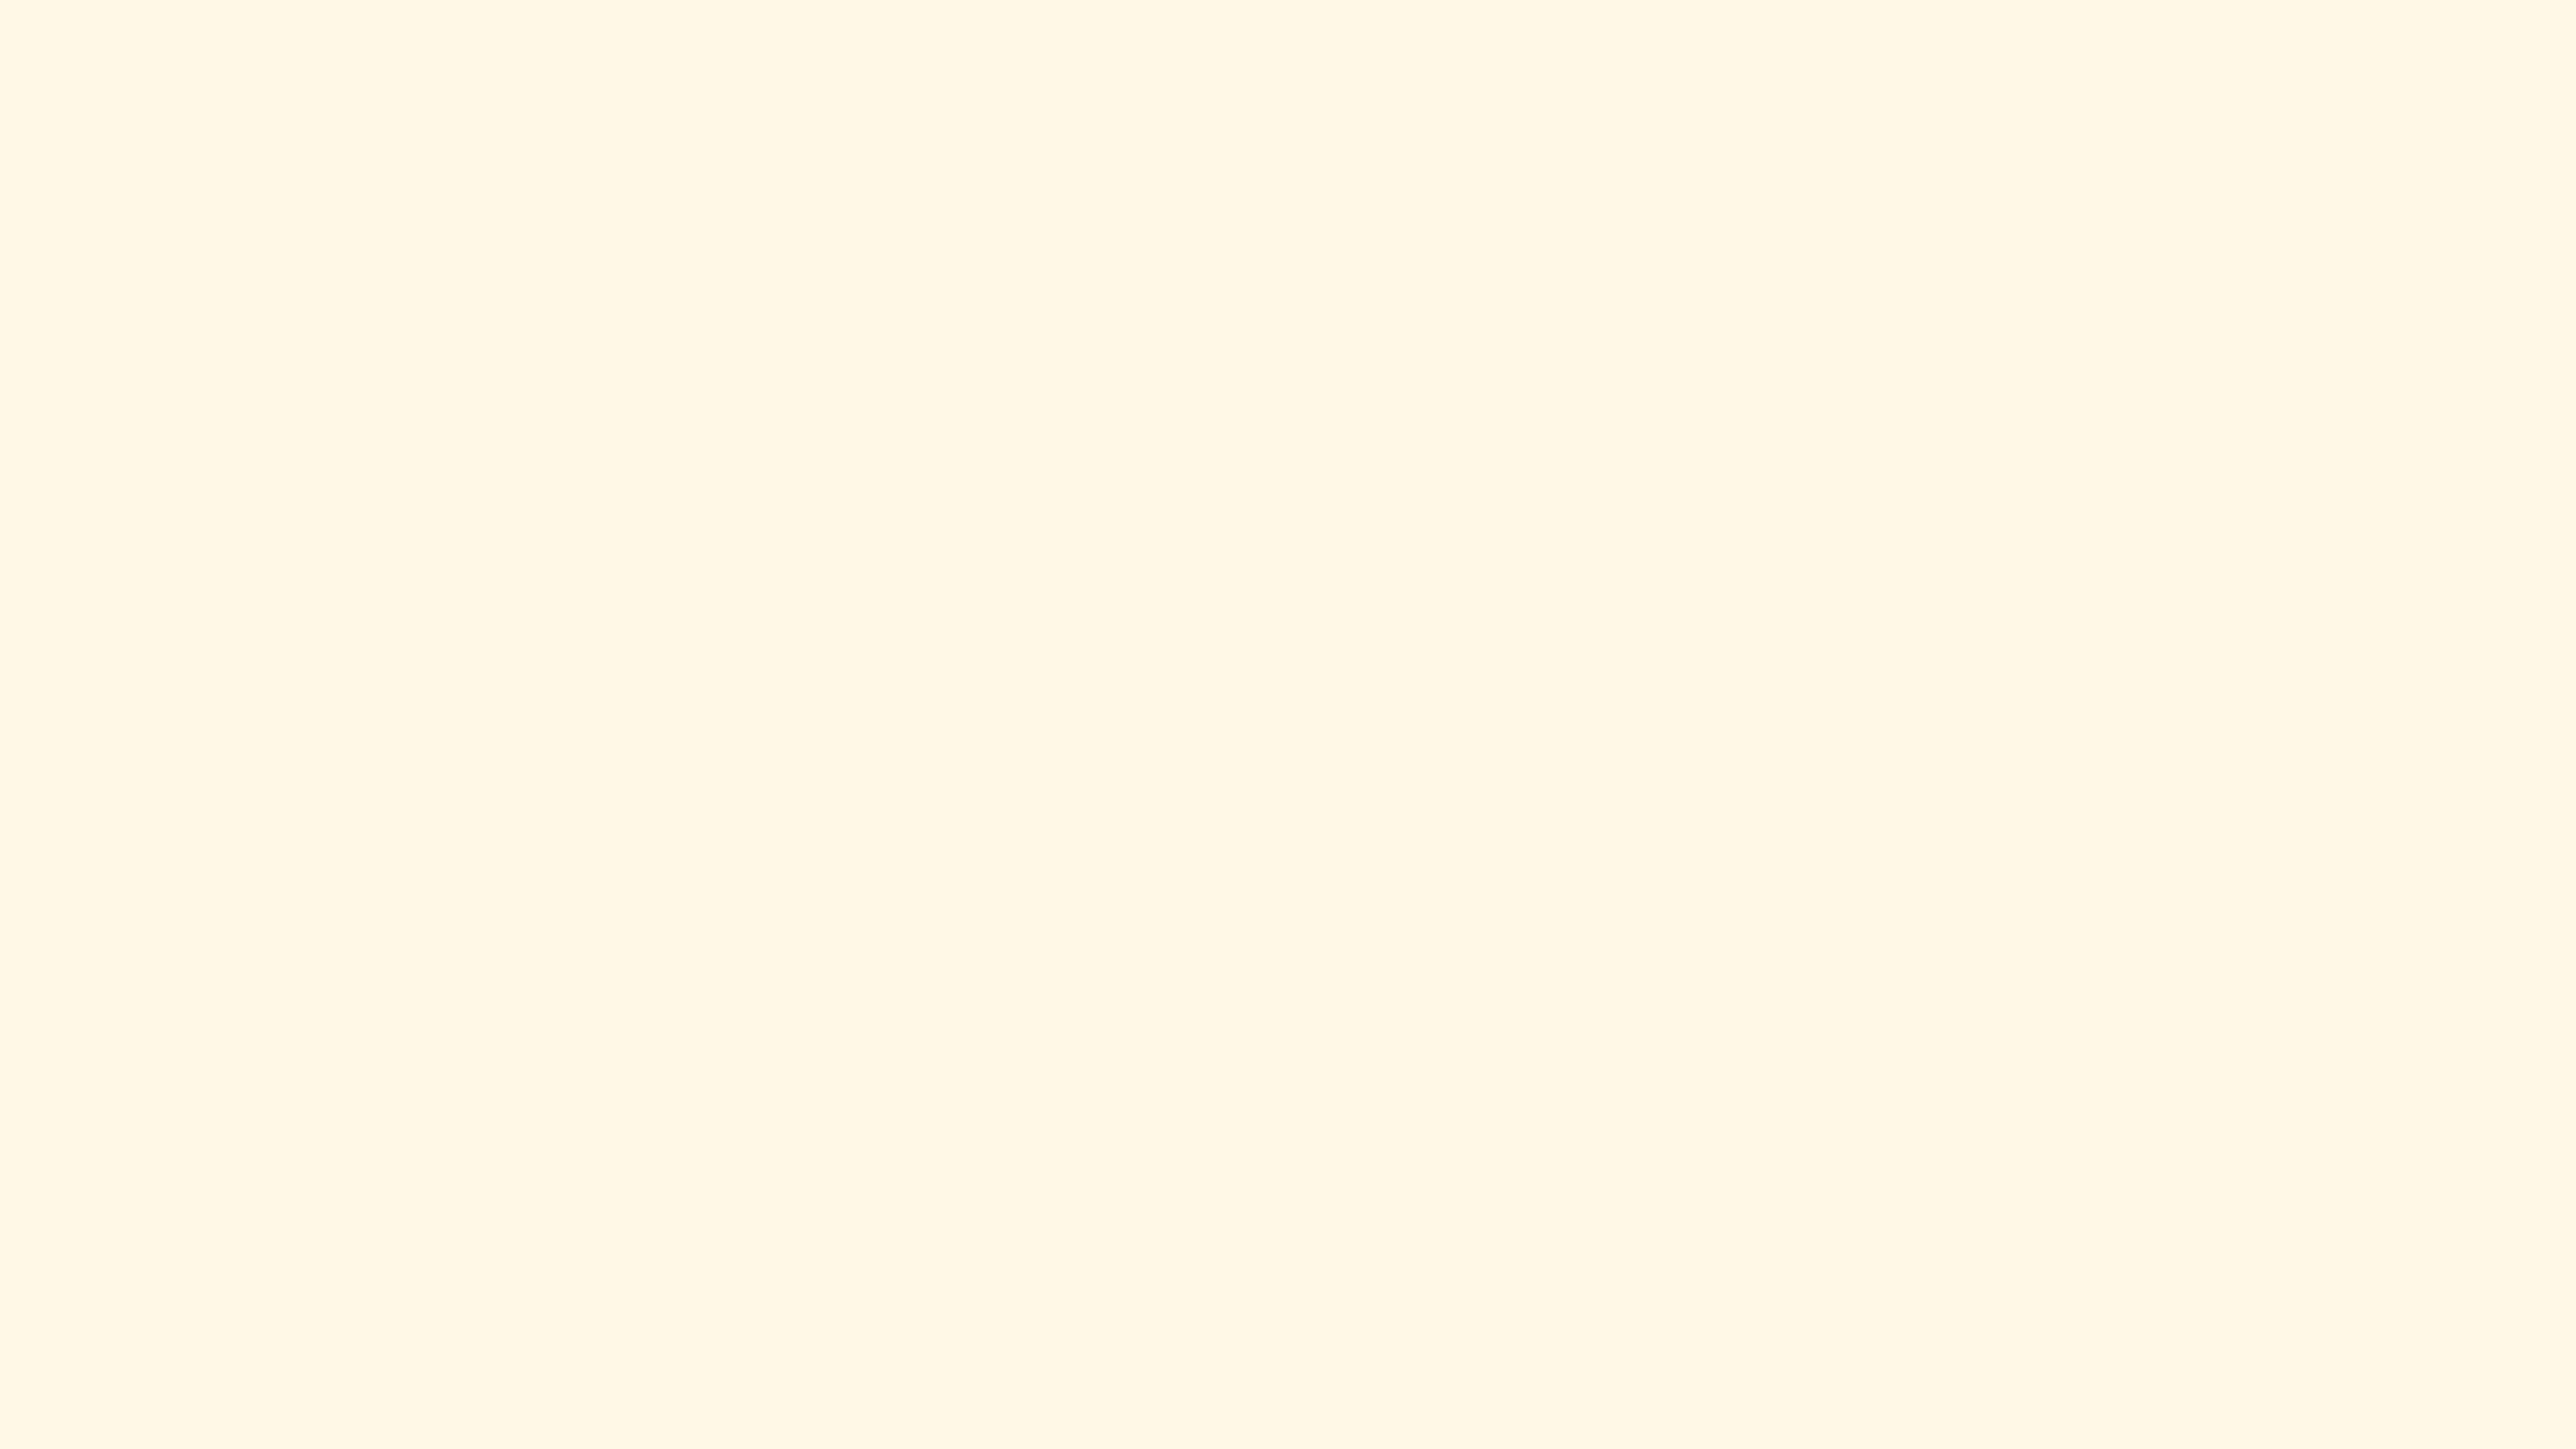 4096x2304 Cosmic Latte Solid Color Background